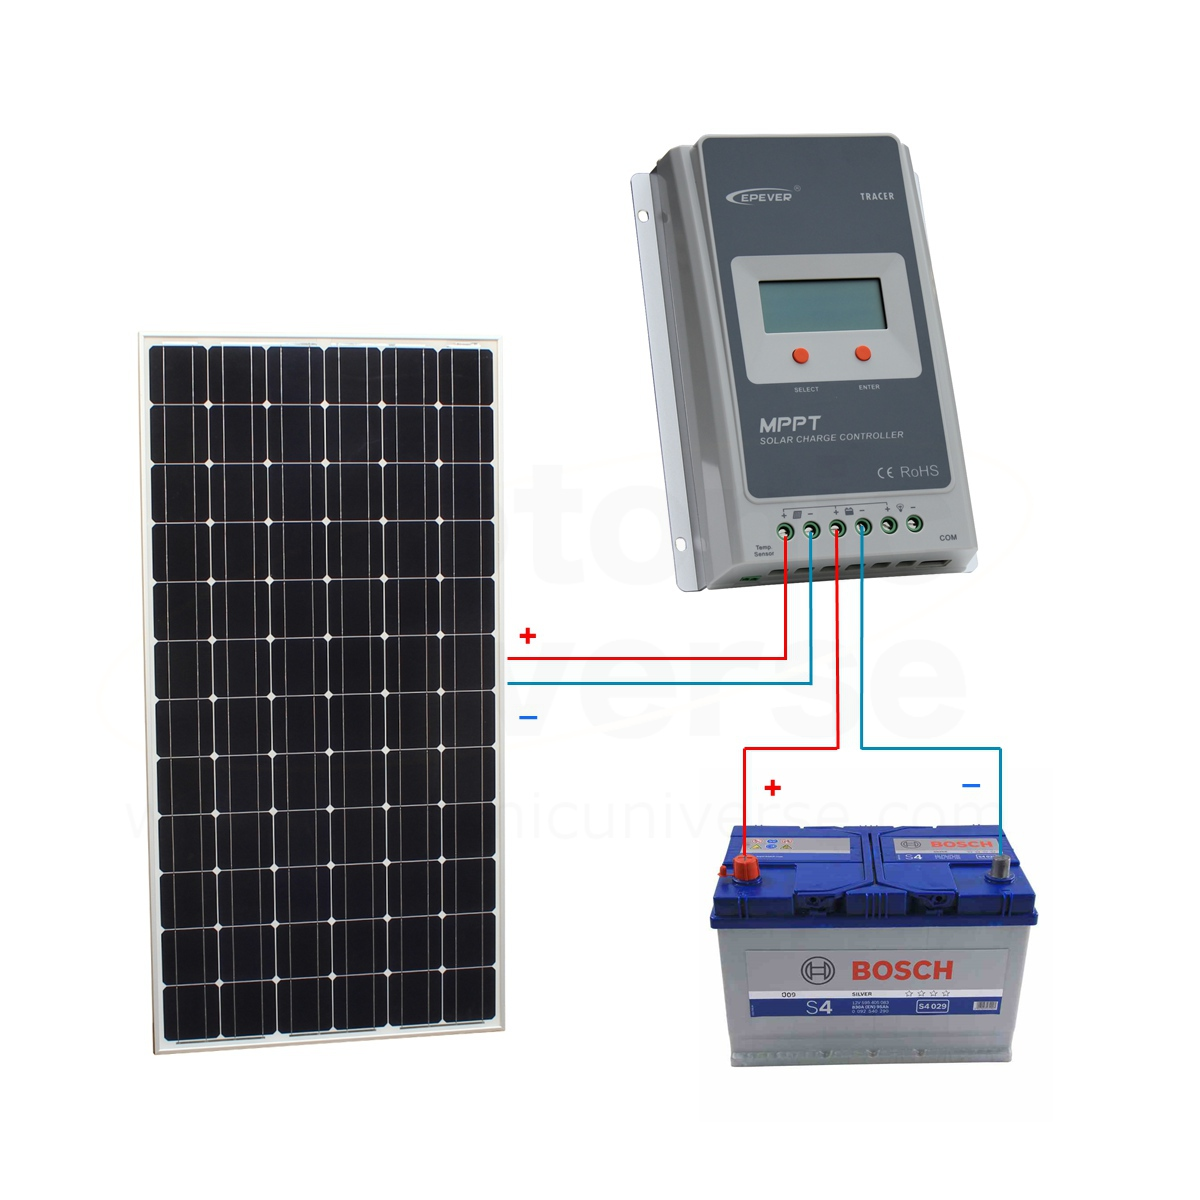 internal telephone extension wiring diagram water level controller circuit 200w 12v 24v solar panel charging kit for motorhome